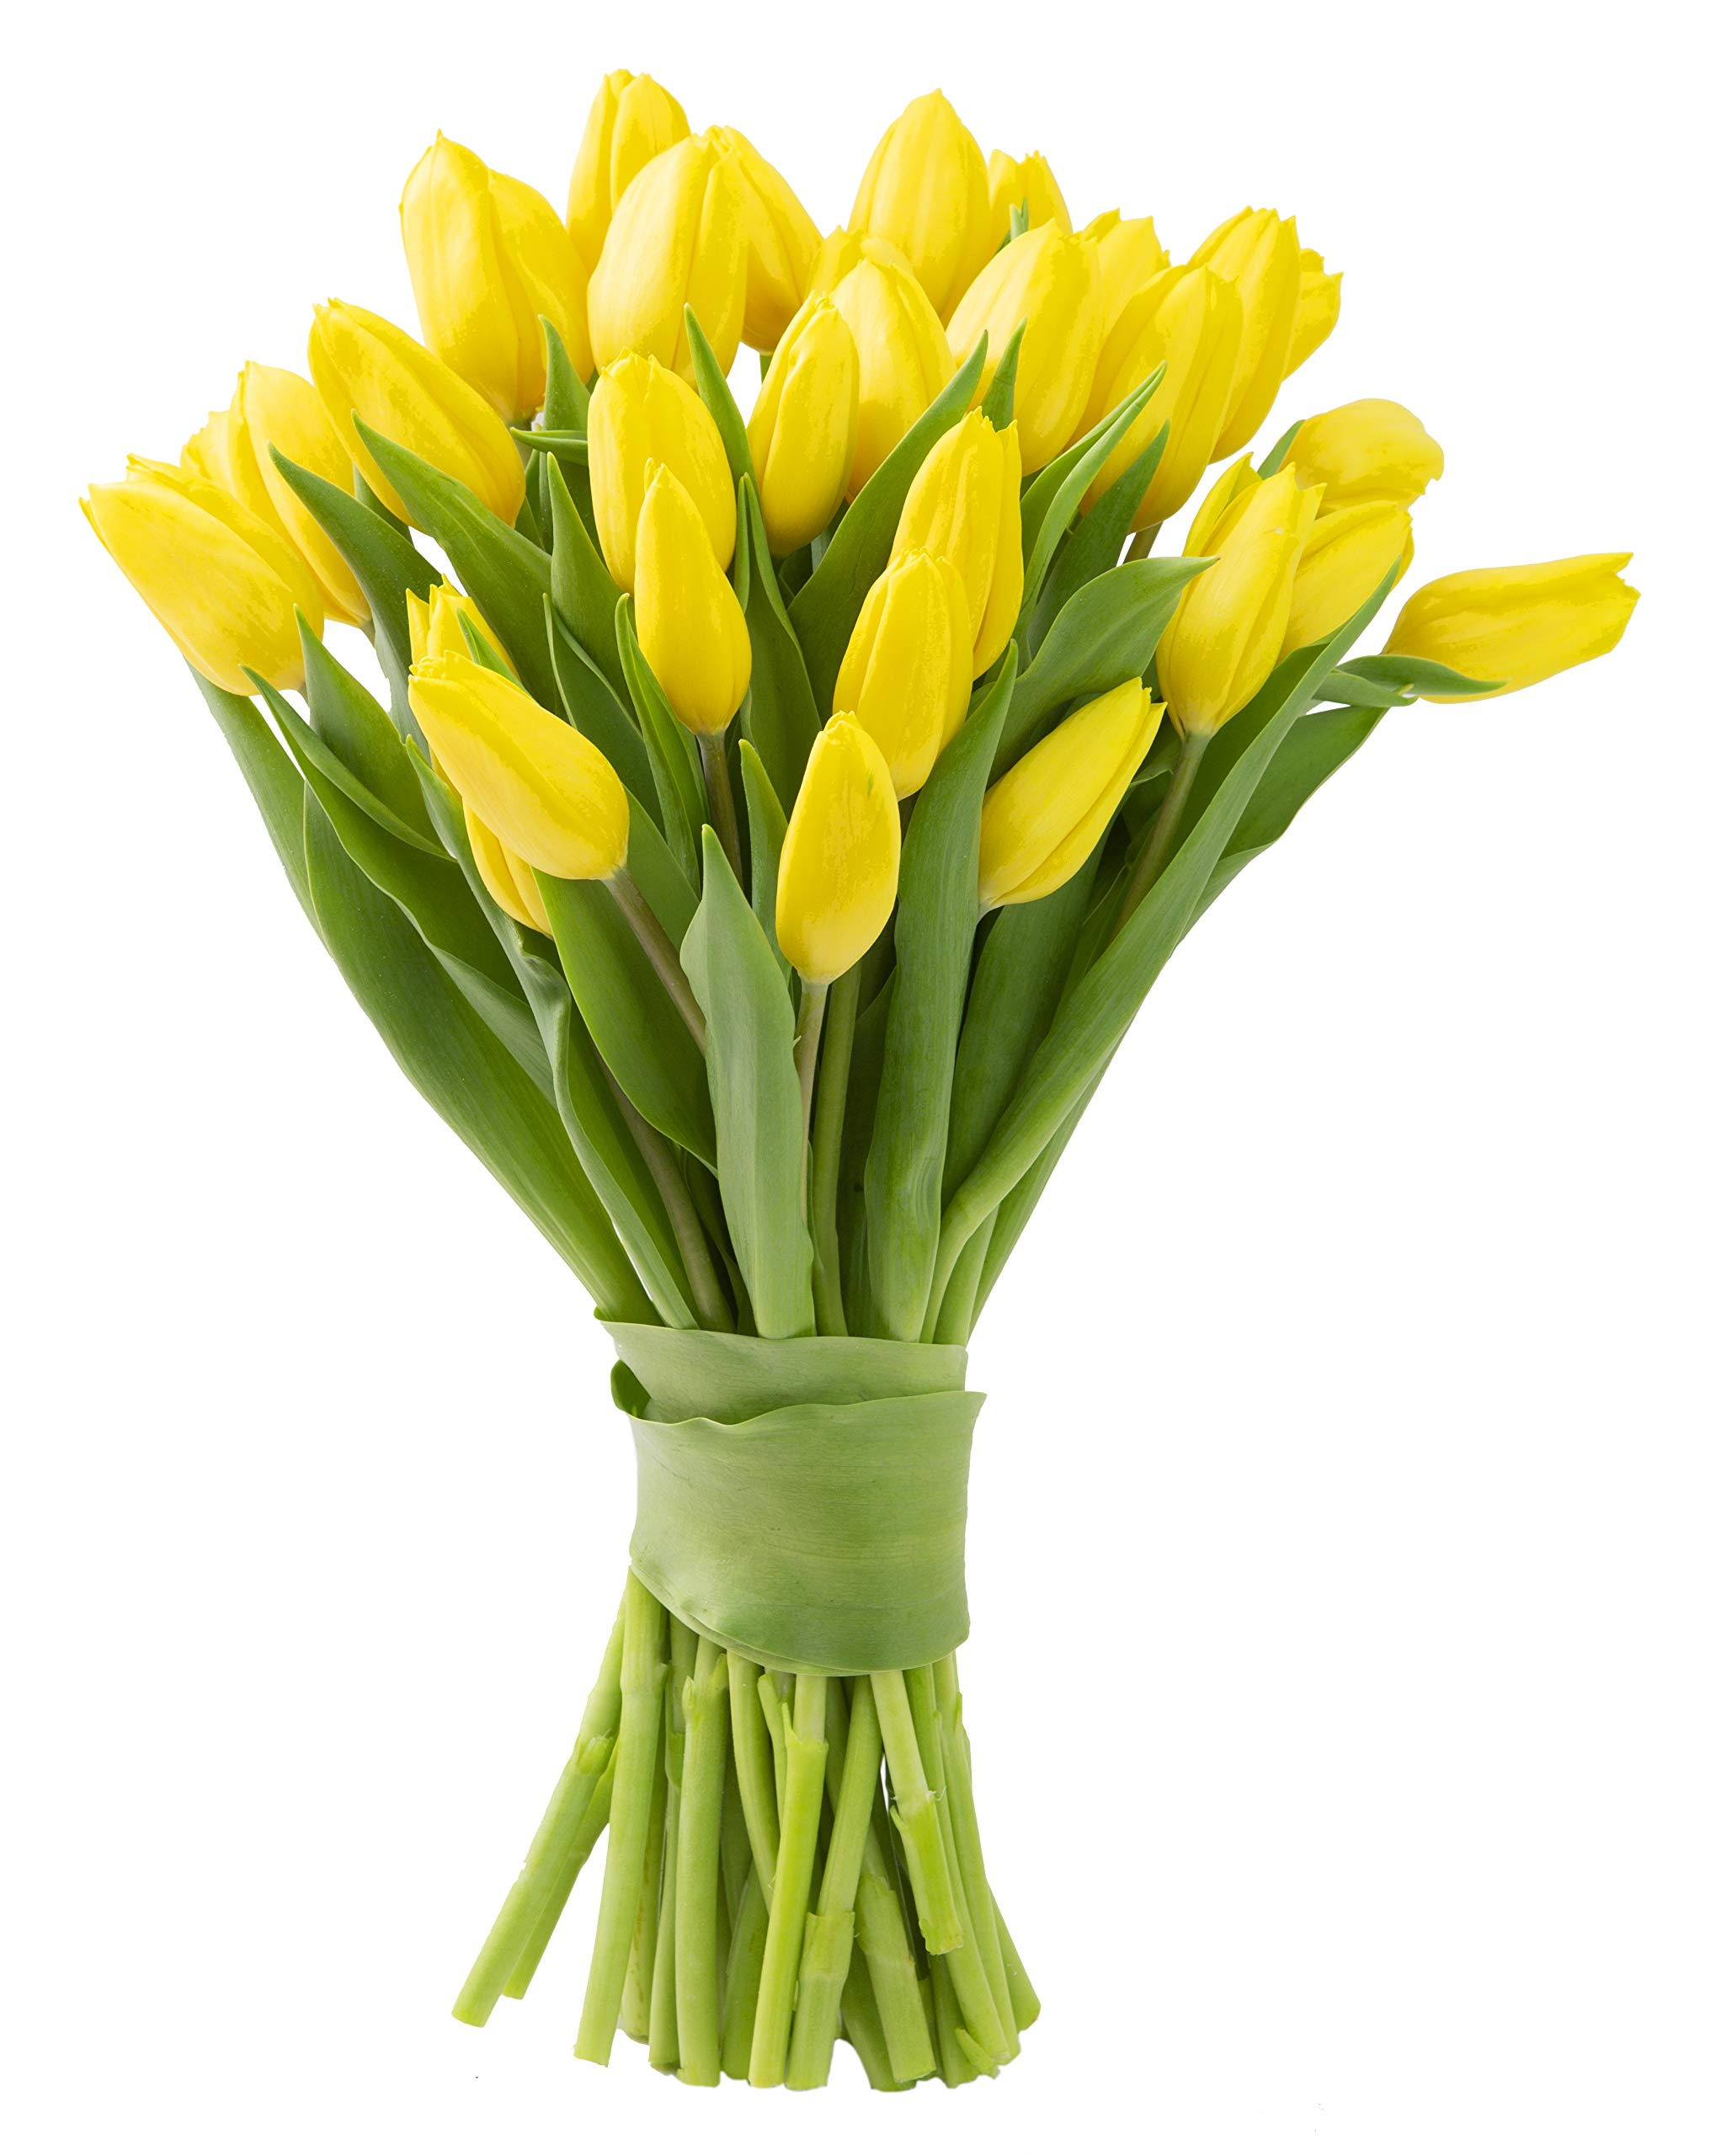 Blooms2Door 30 Yellow Tulips (Farm-Fresh Flowers, Cut-to-Order, and Homegrown in the USA)